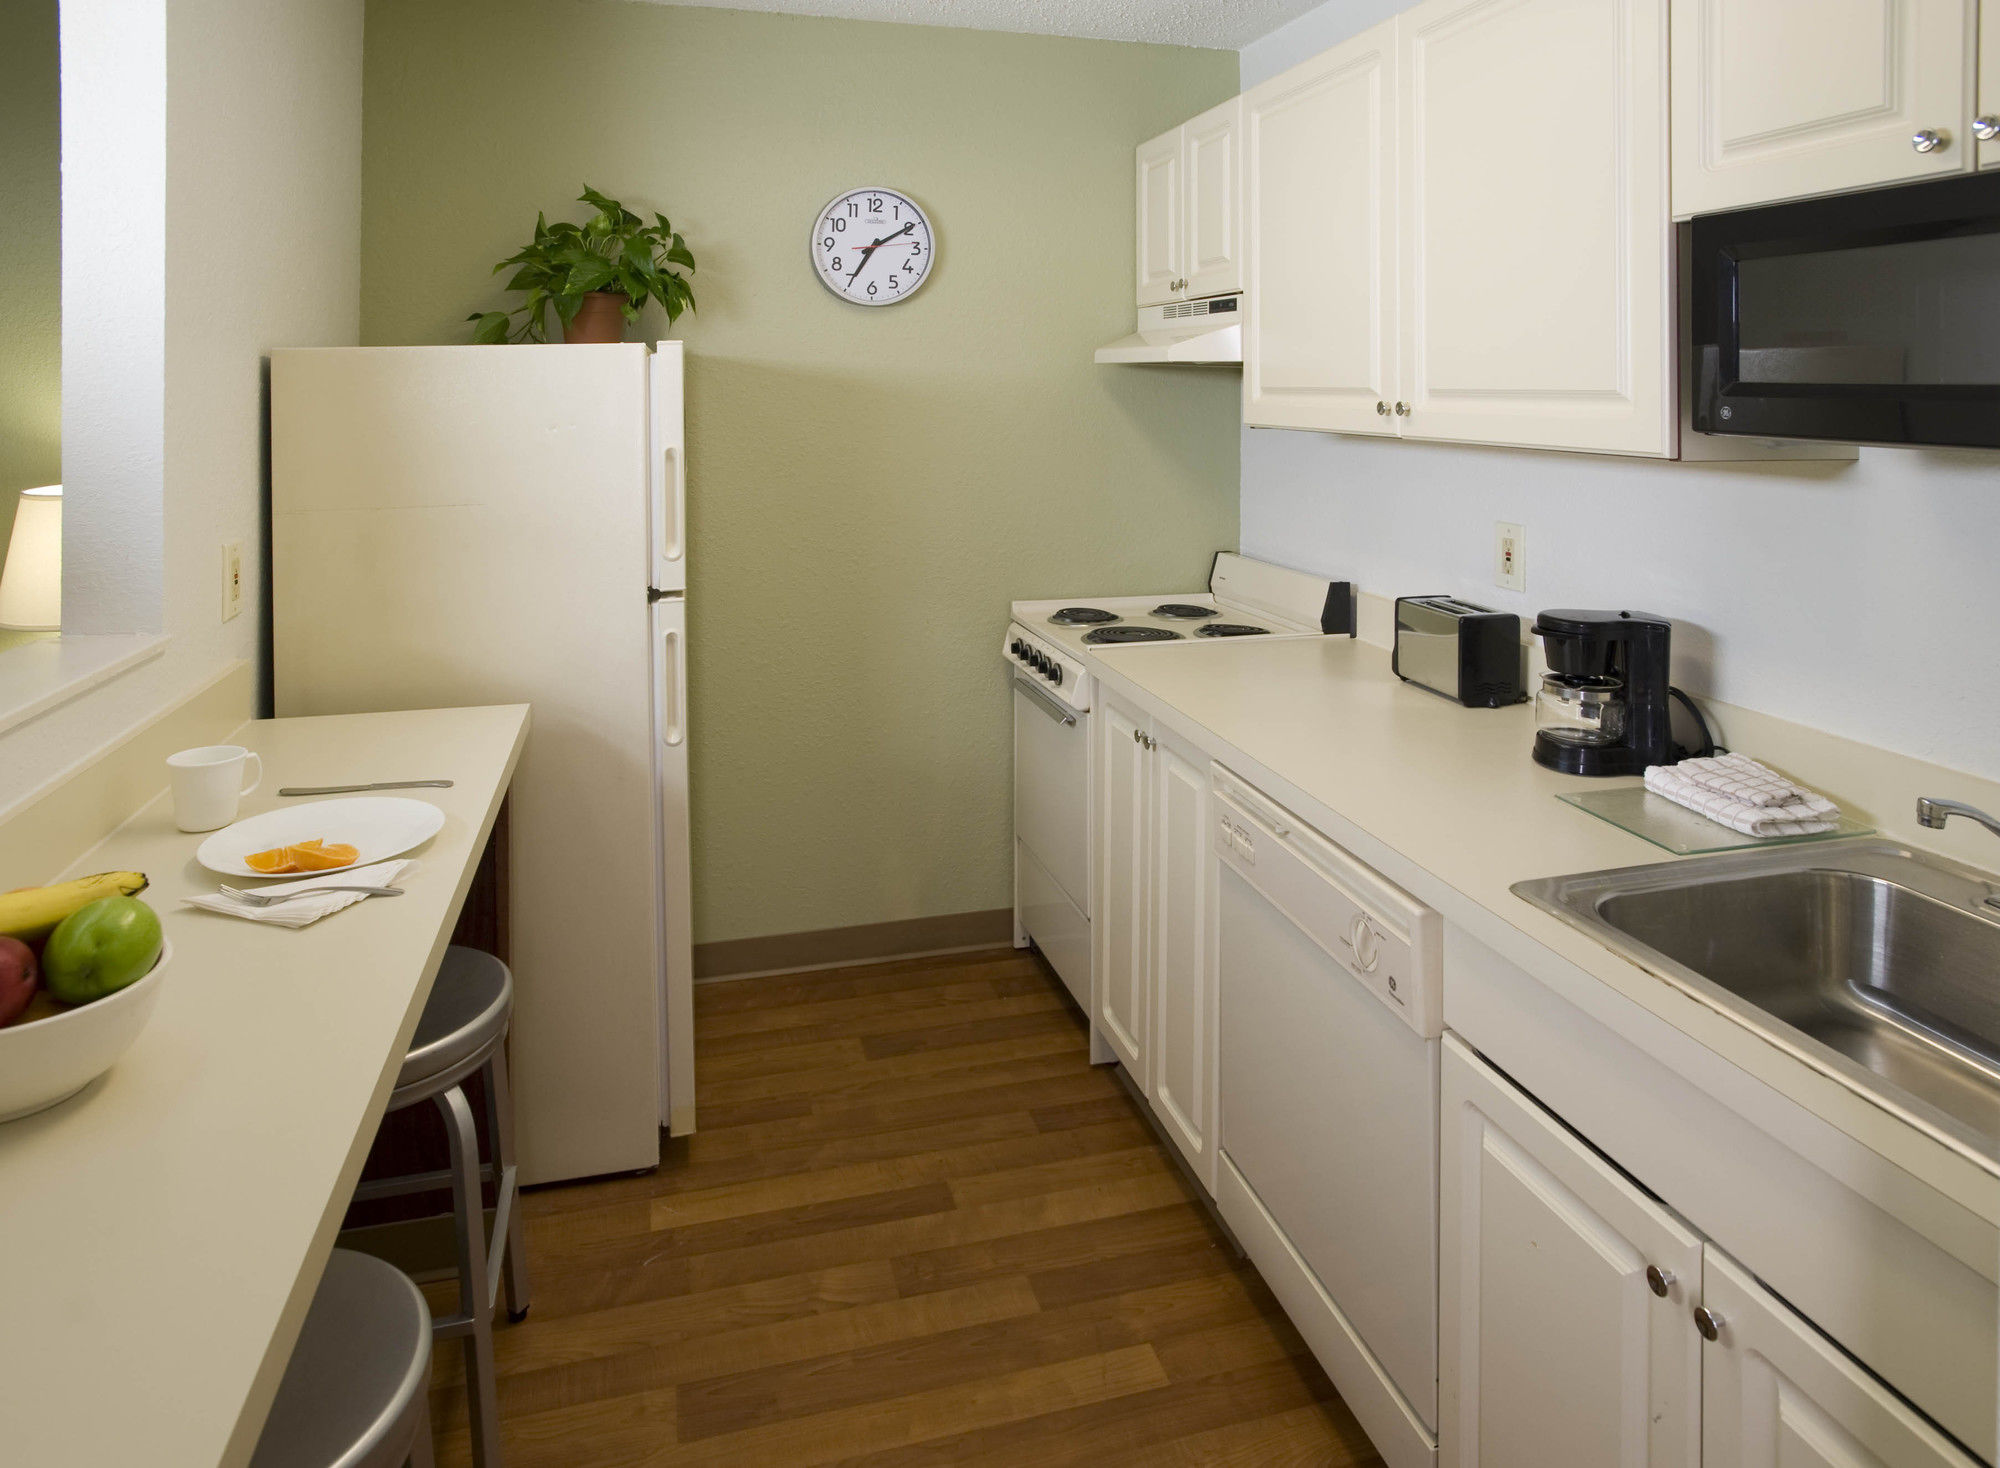 Extended Stay America Washington, DC - Gaithersburg - South